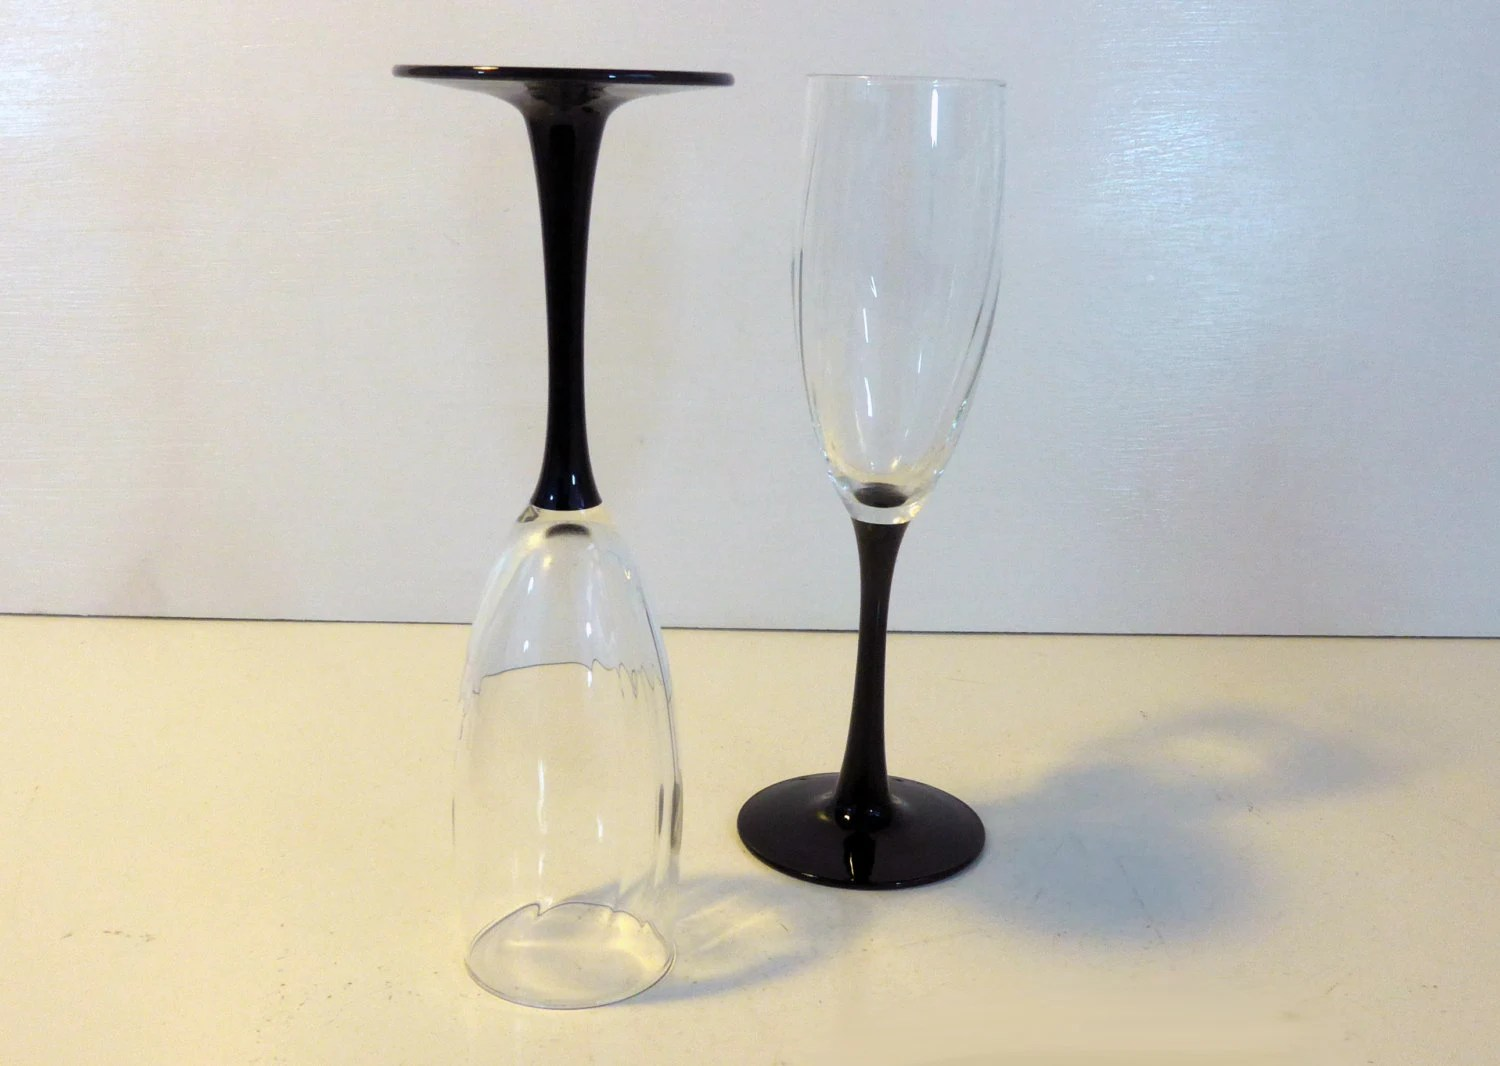 Wine Glasses With Black Stems Champagne Flutes Pair Wine Glasses 2 Luminarc France